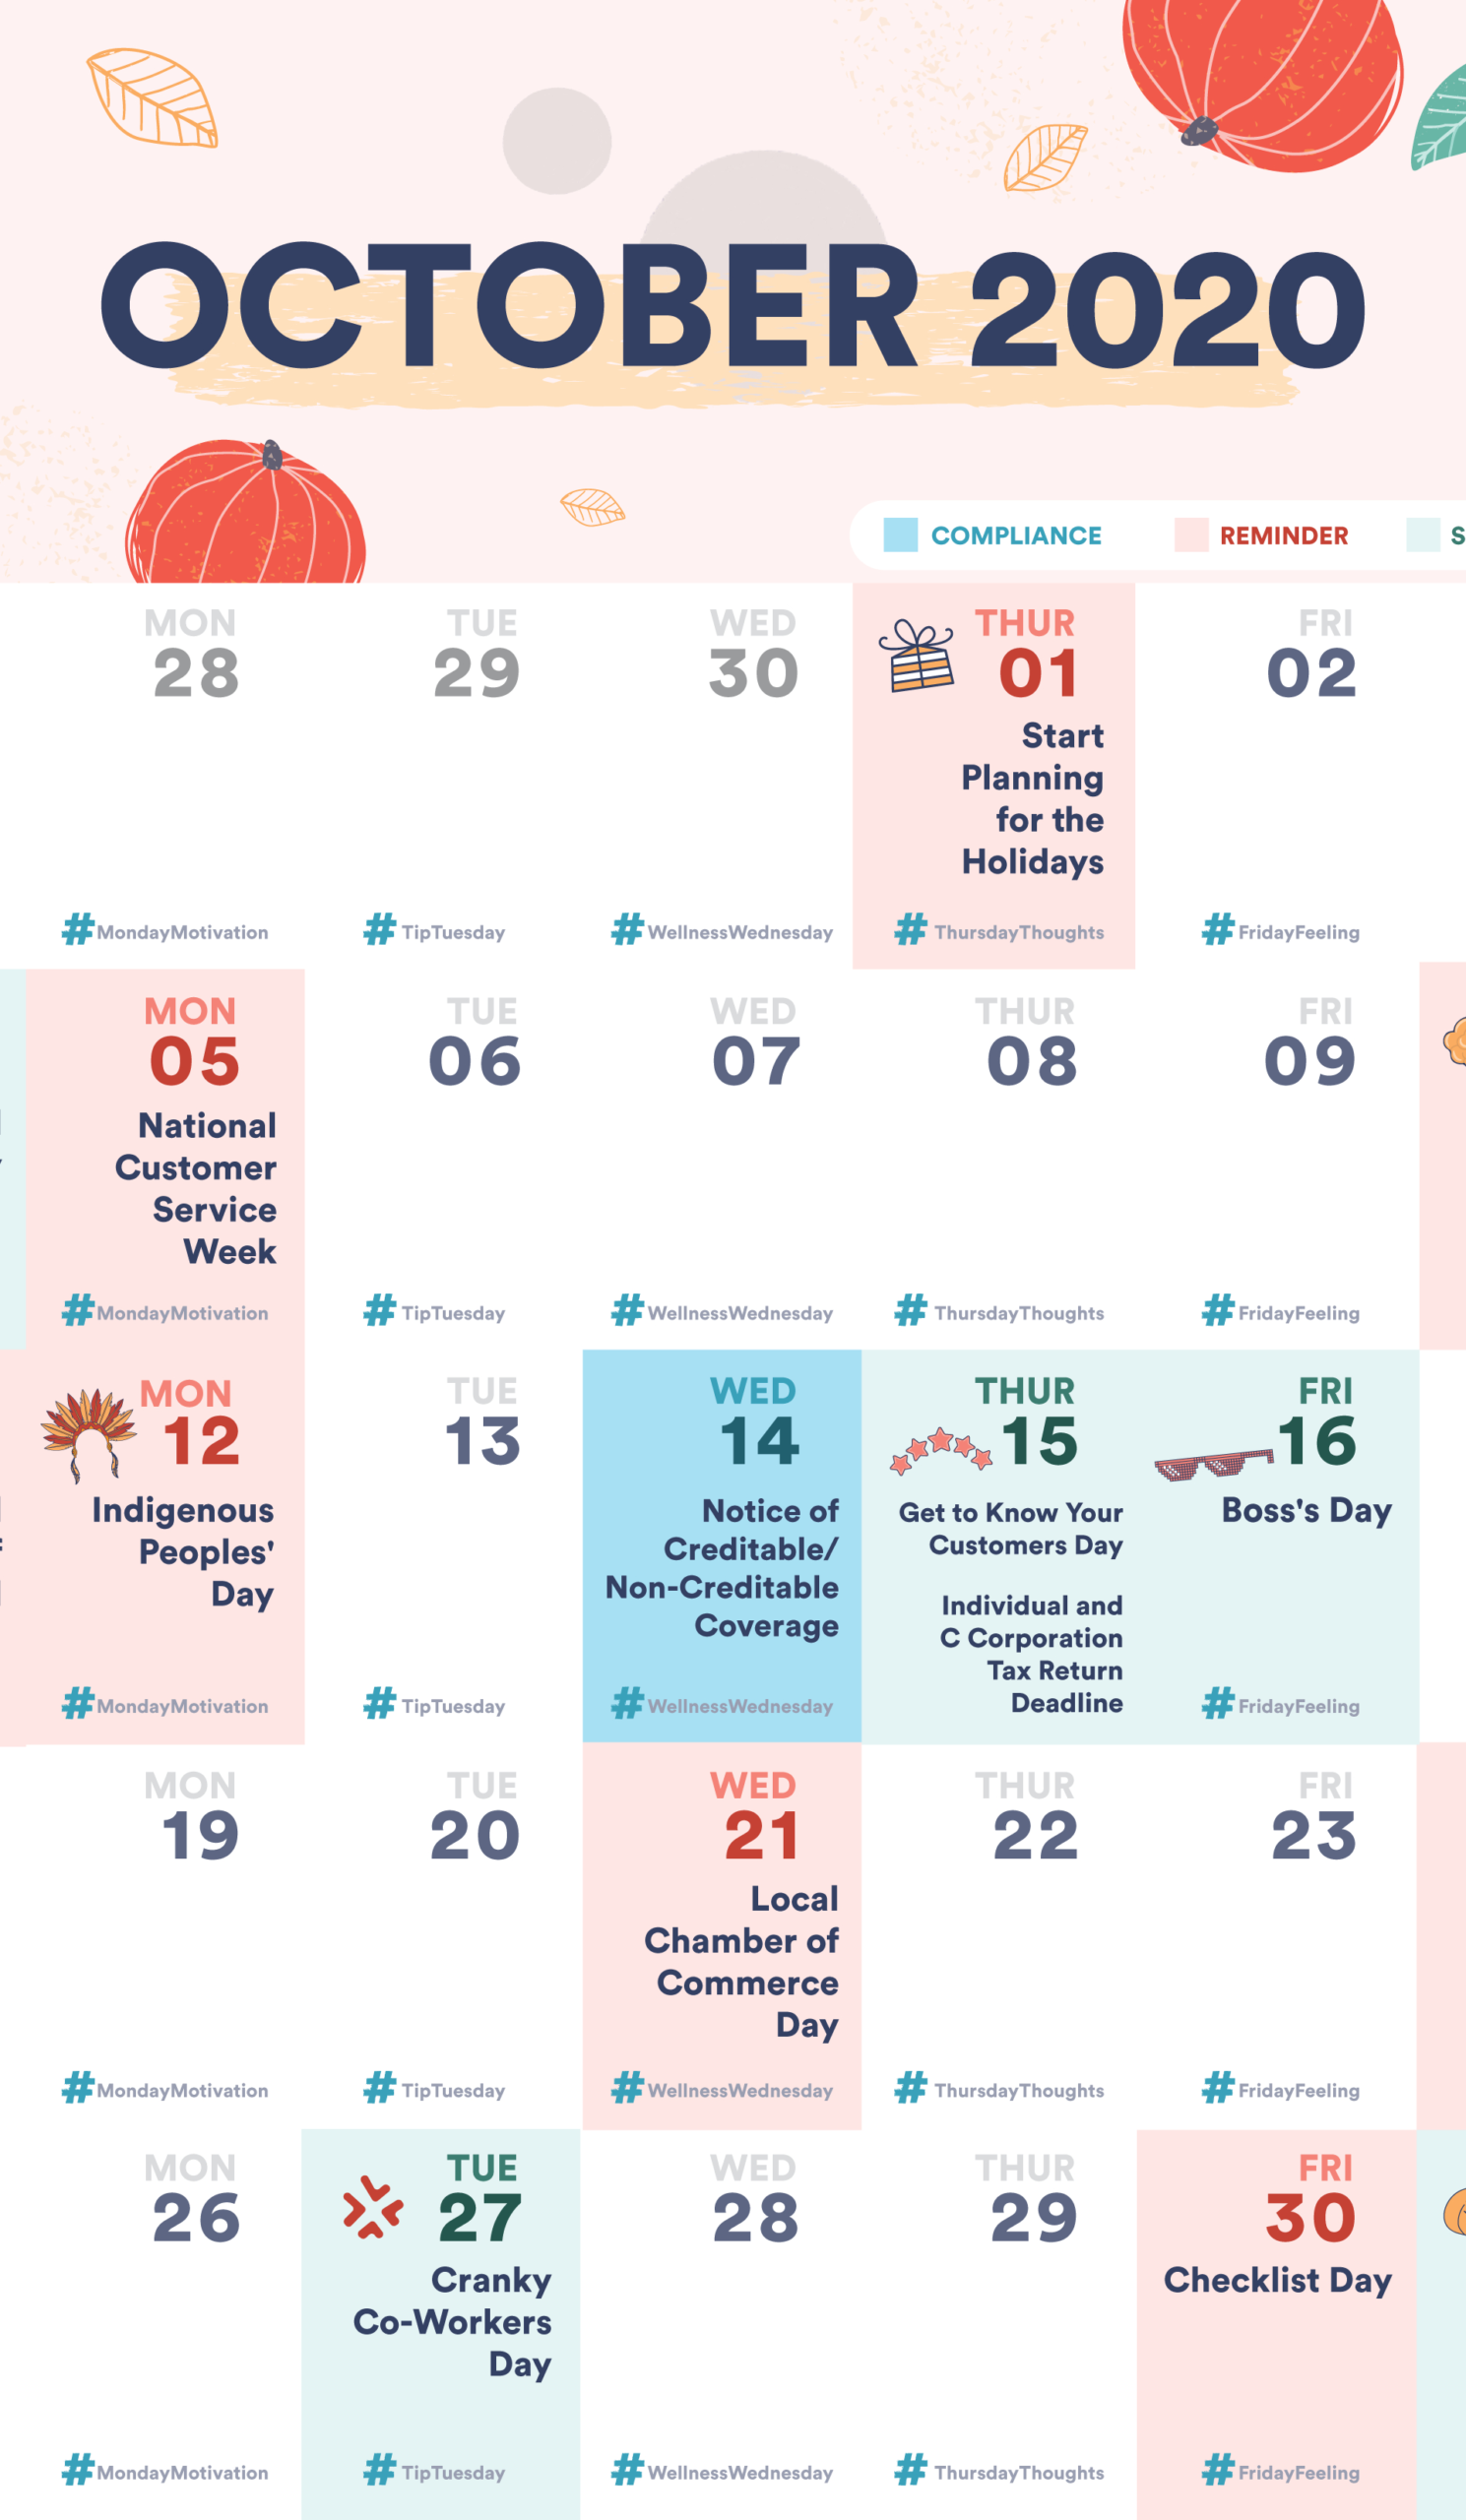 Free Small Business And Hr Compliance Calendar: October 2020